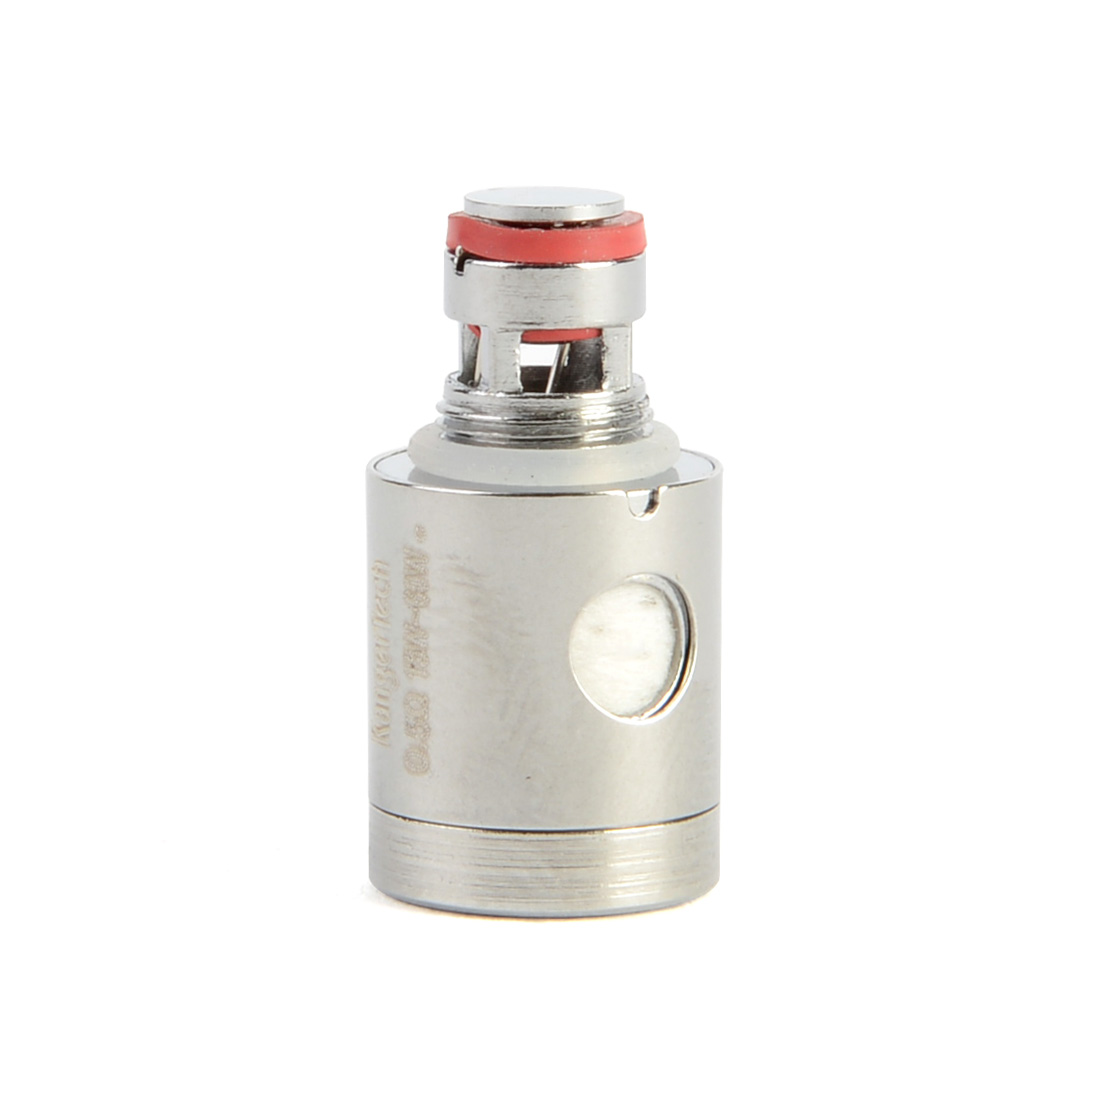 MECHE SUBTANK 1,2 OHM